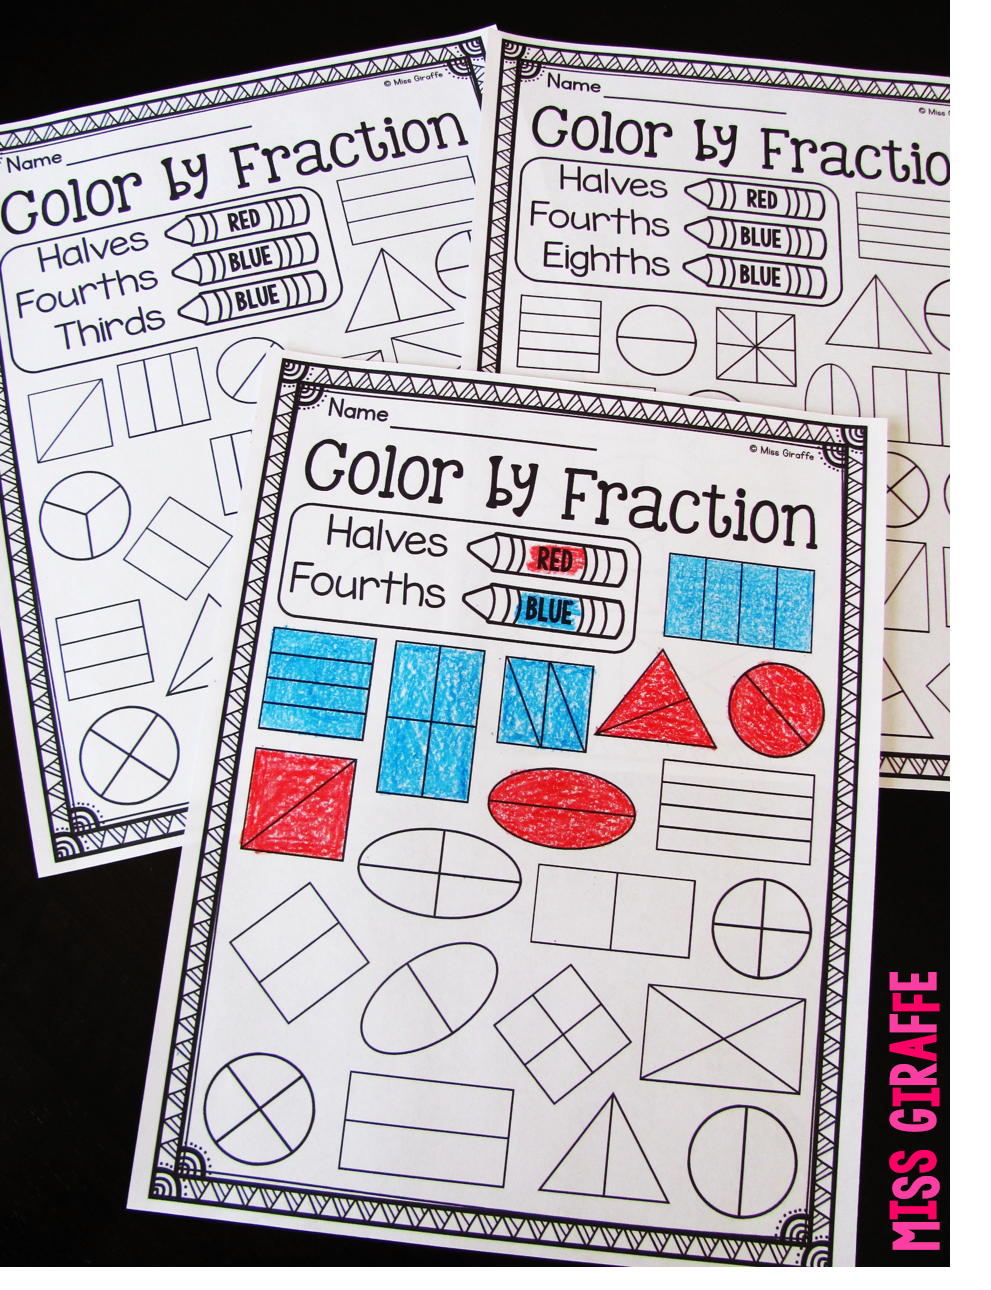 Miss Giraffes Class Fractions in First Grade – Fraction Concepts Worksheets